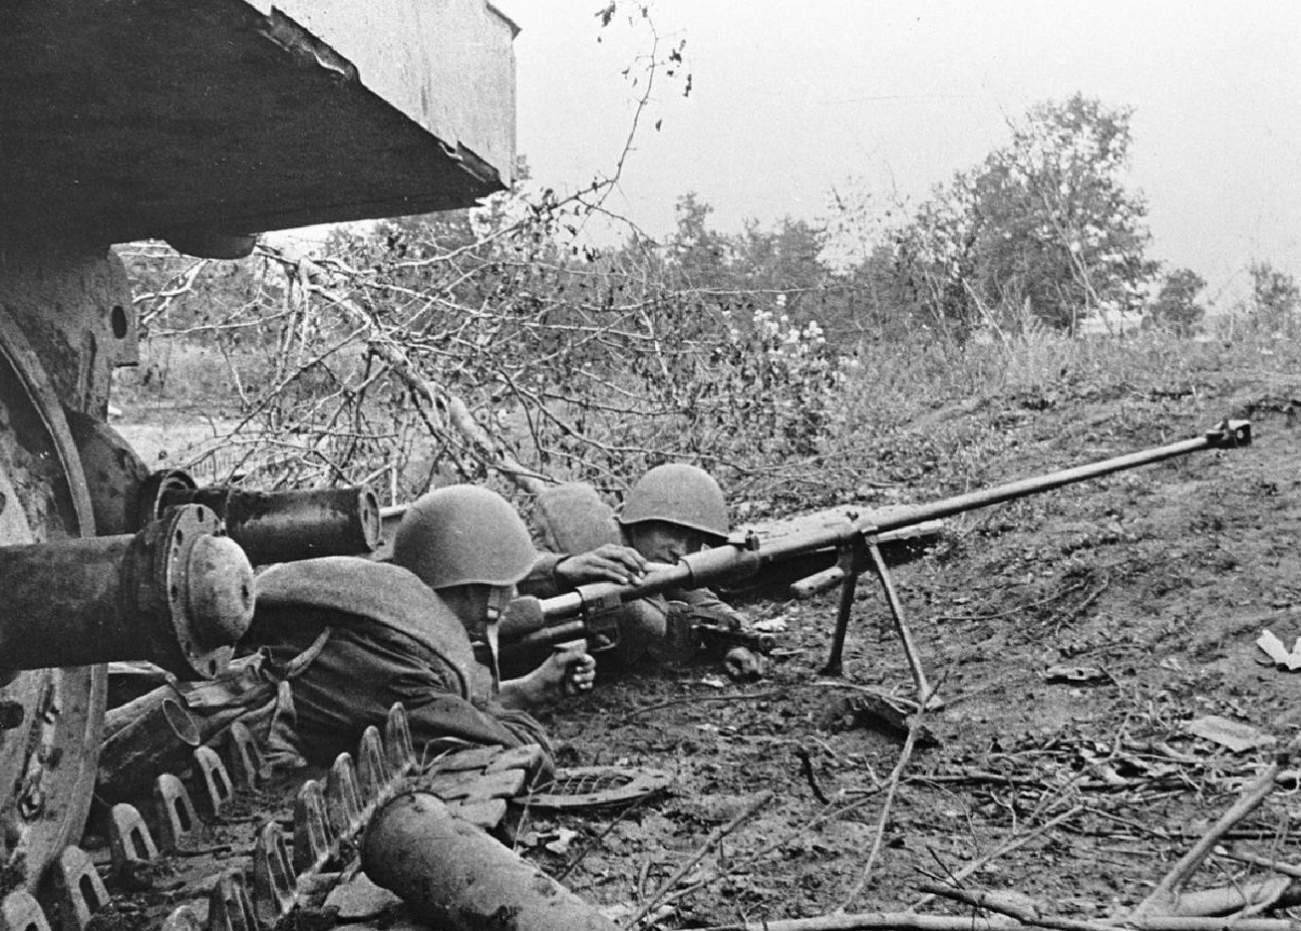 The PTRD Was The Soviet Anti-Tank Rifle That Defeated Nazi Germany